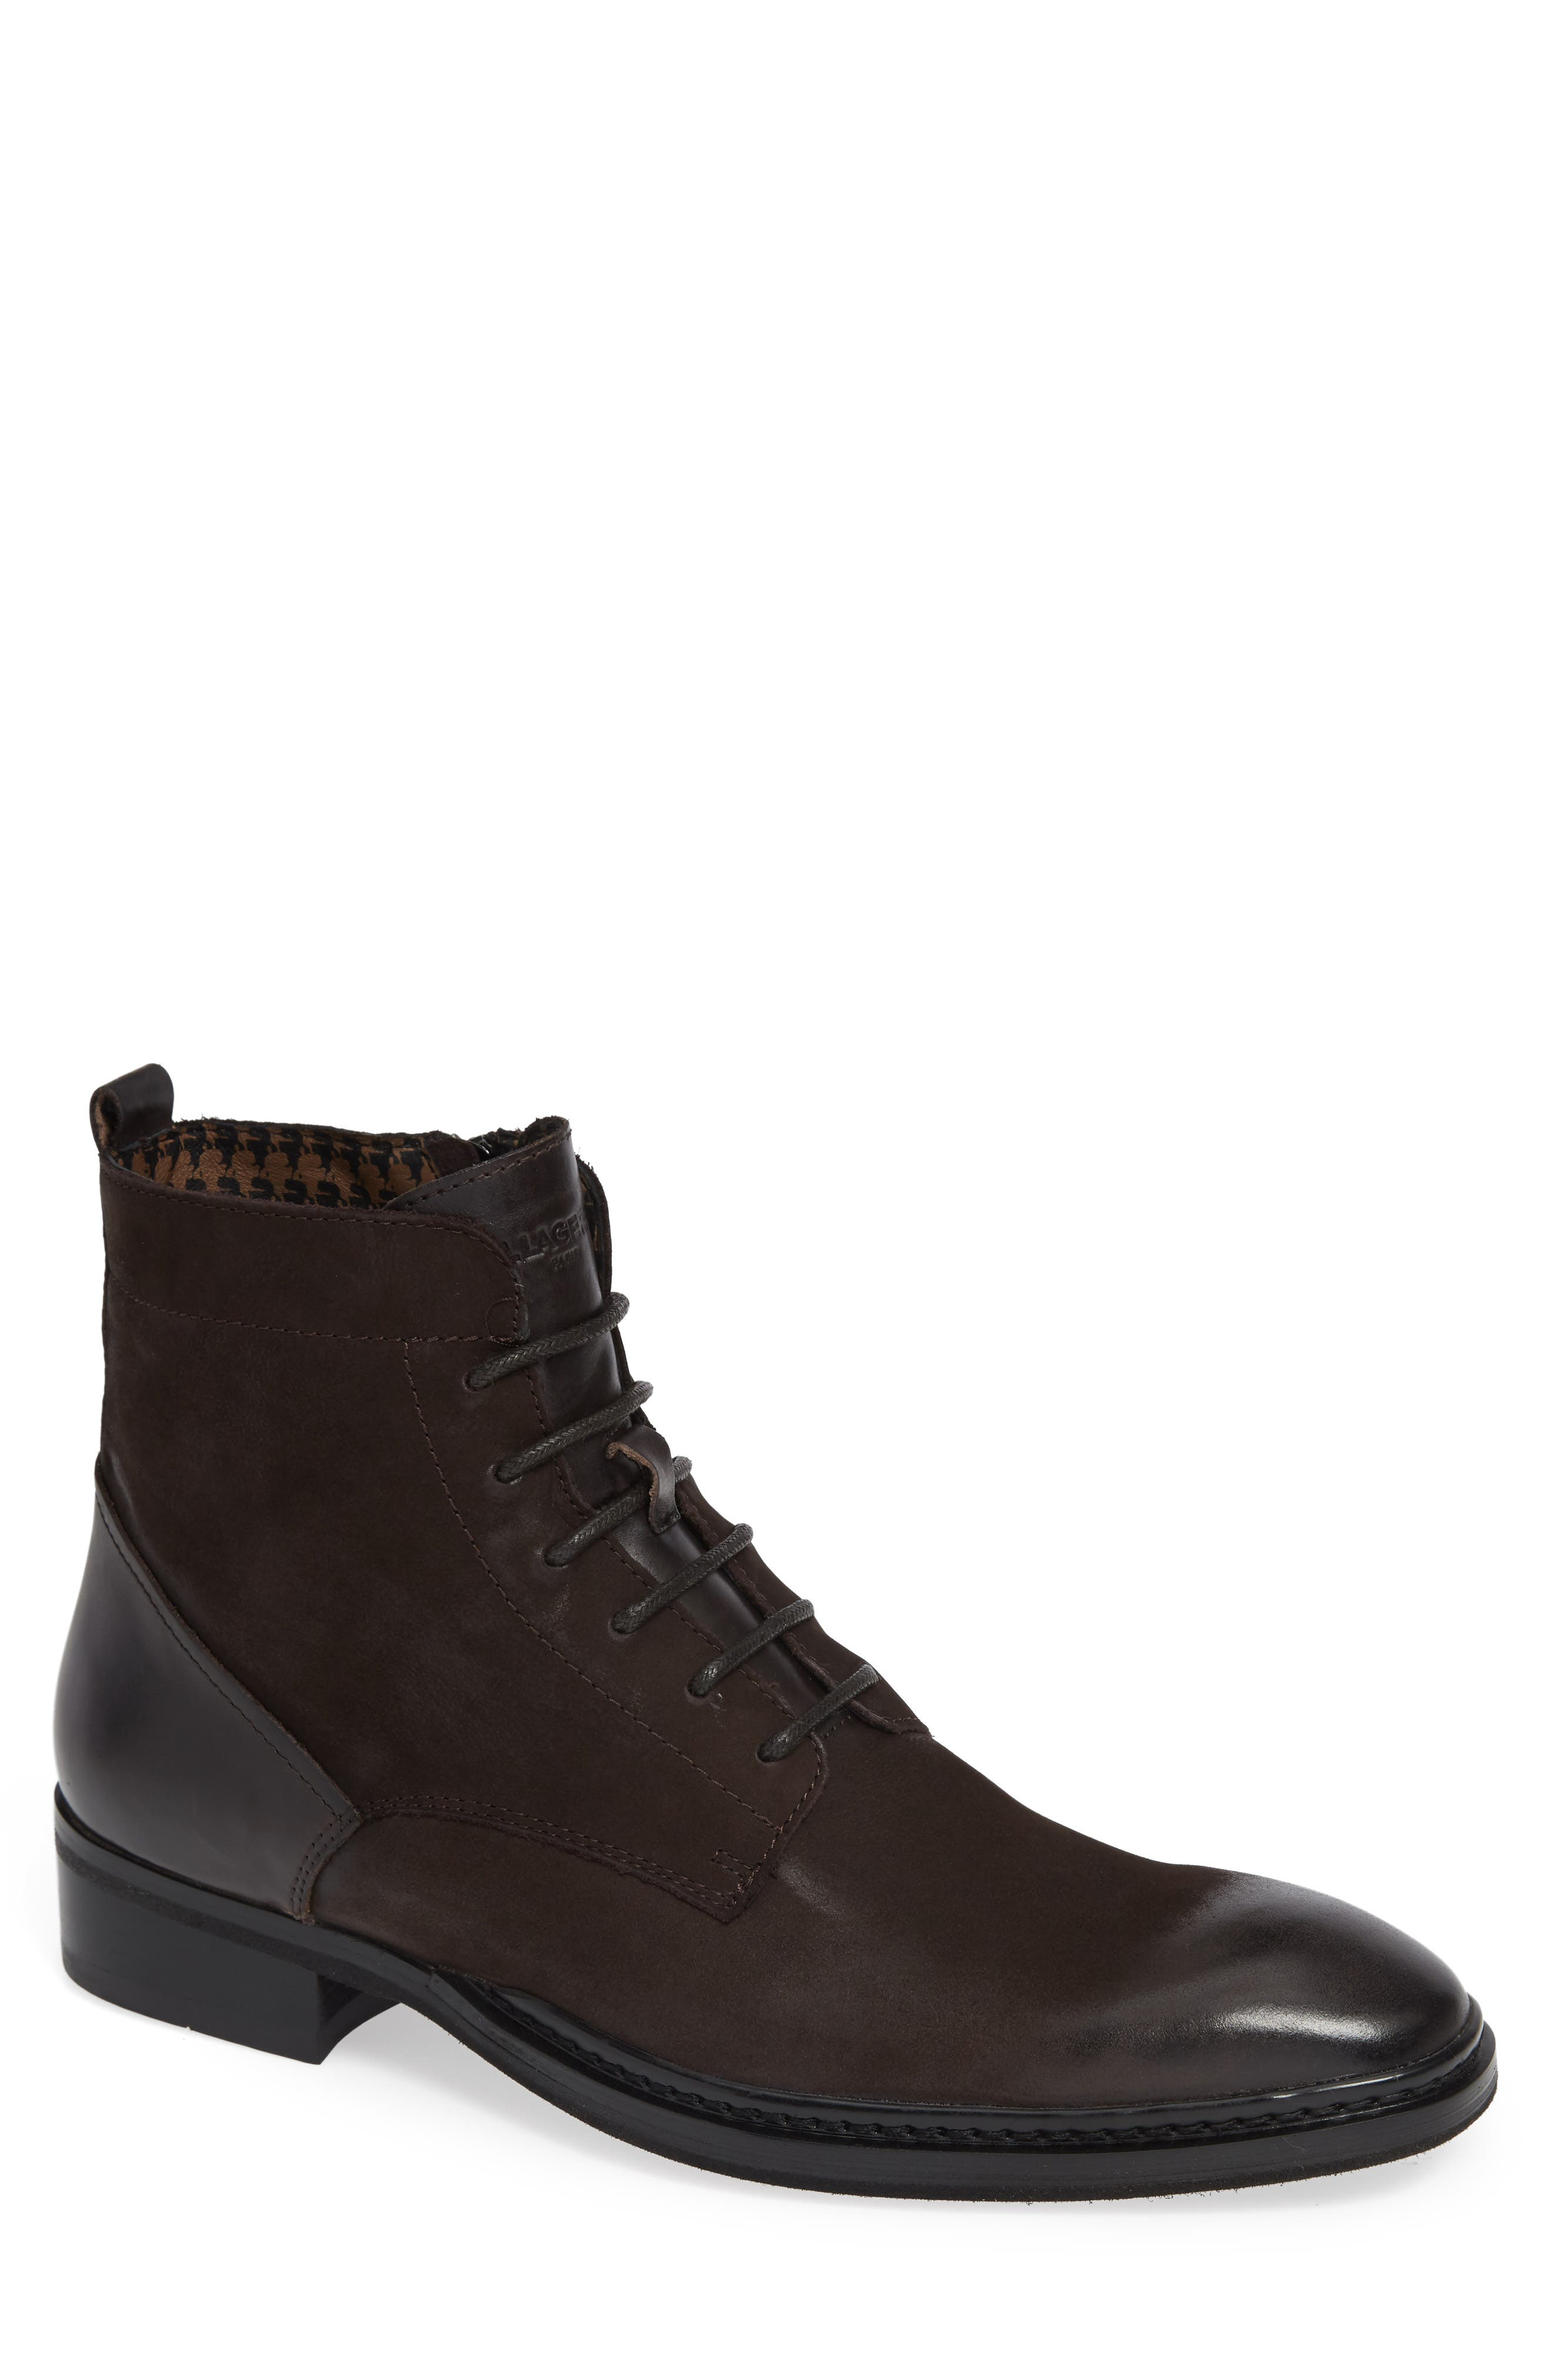 KARL LAGERFELD Men'S Leather Lace-Up Boots in Brown